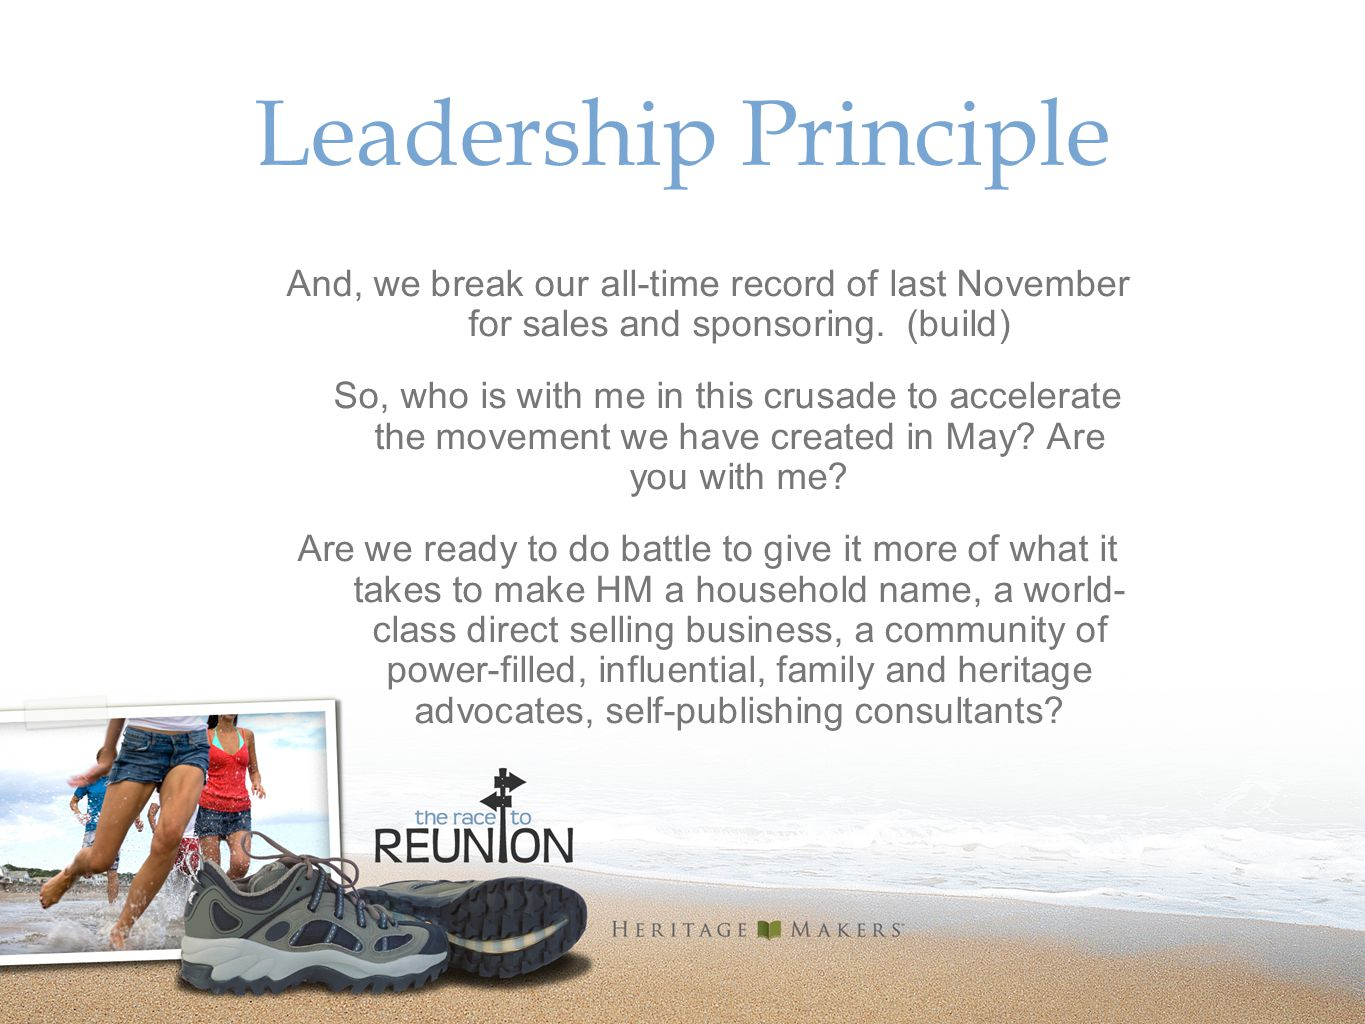 Leadership Principle And, we break our all-time record of last November for sales and sponsoring.